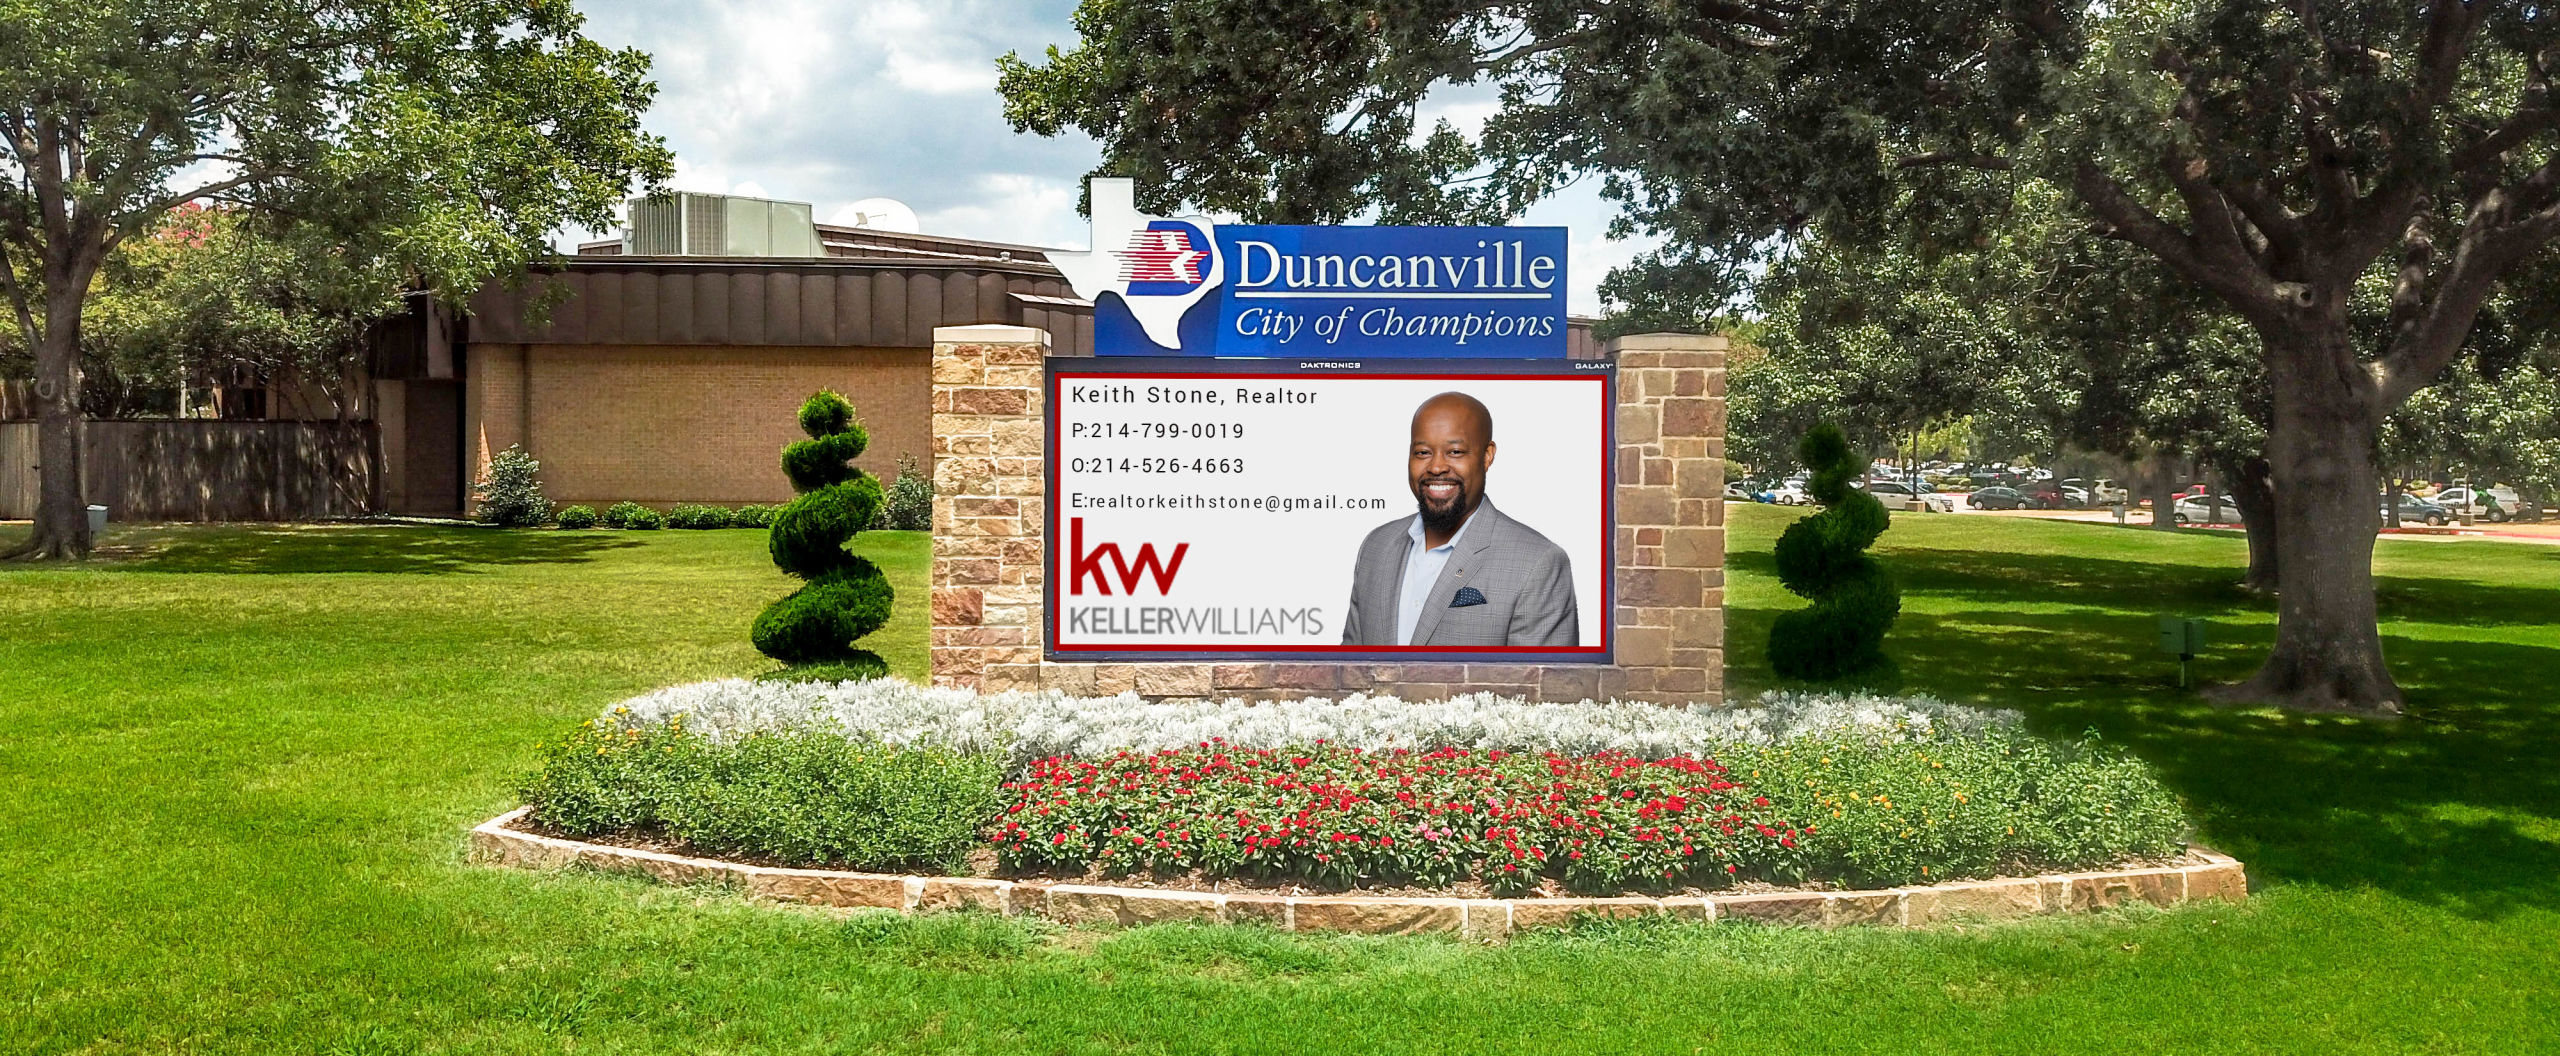 Duncanville - City of Champions